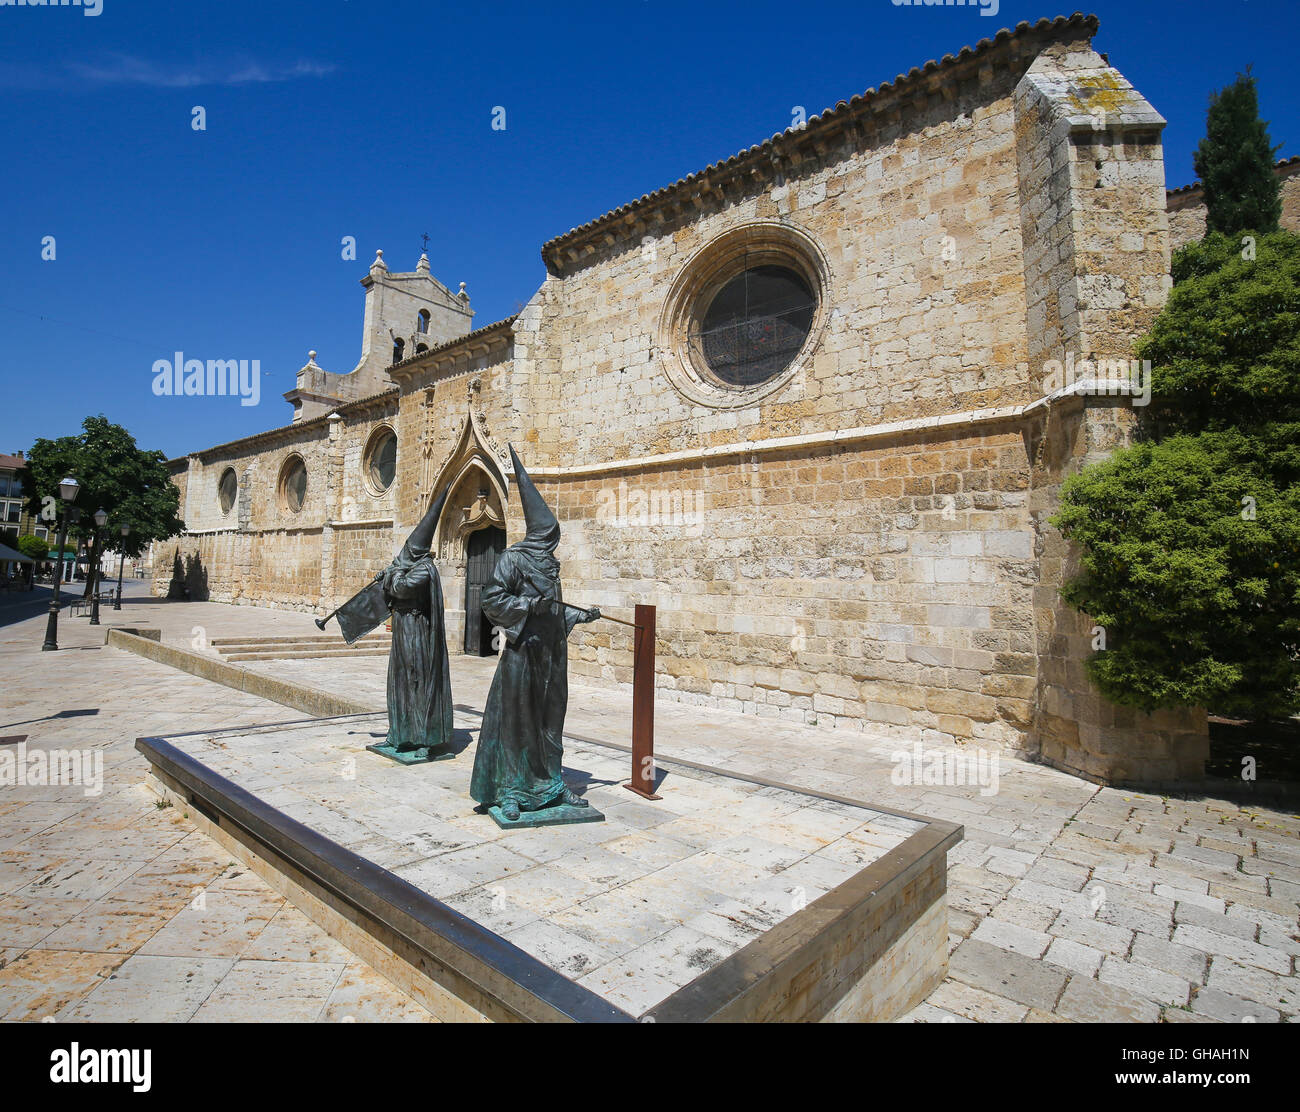 Statue of Capuchin monks by the Convent of San Pablo in Palencia, Castile and Leon, northwest Spain - Stock Image